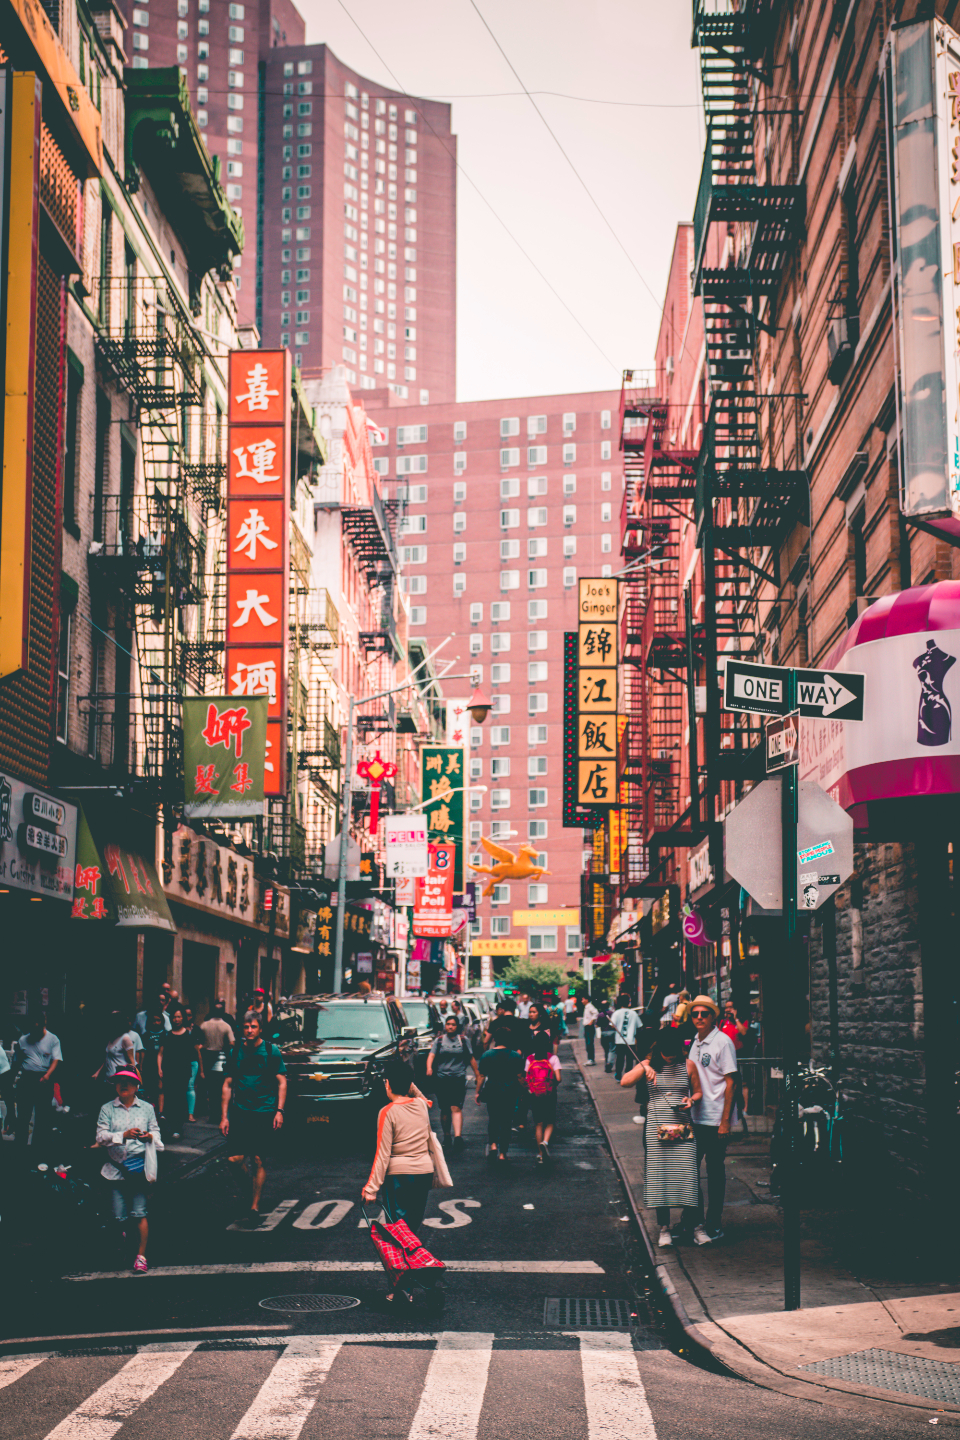 Chinatown New York City street